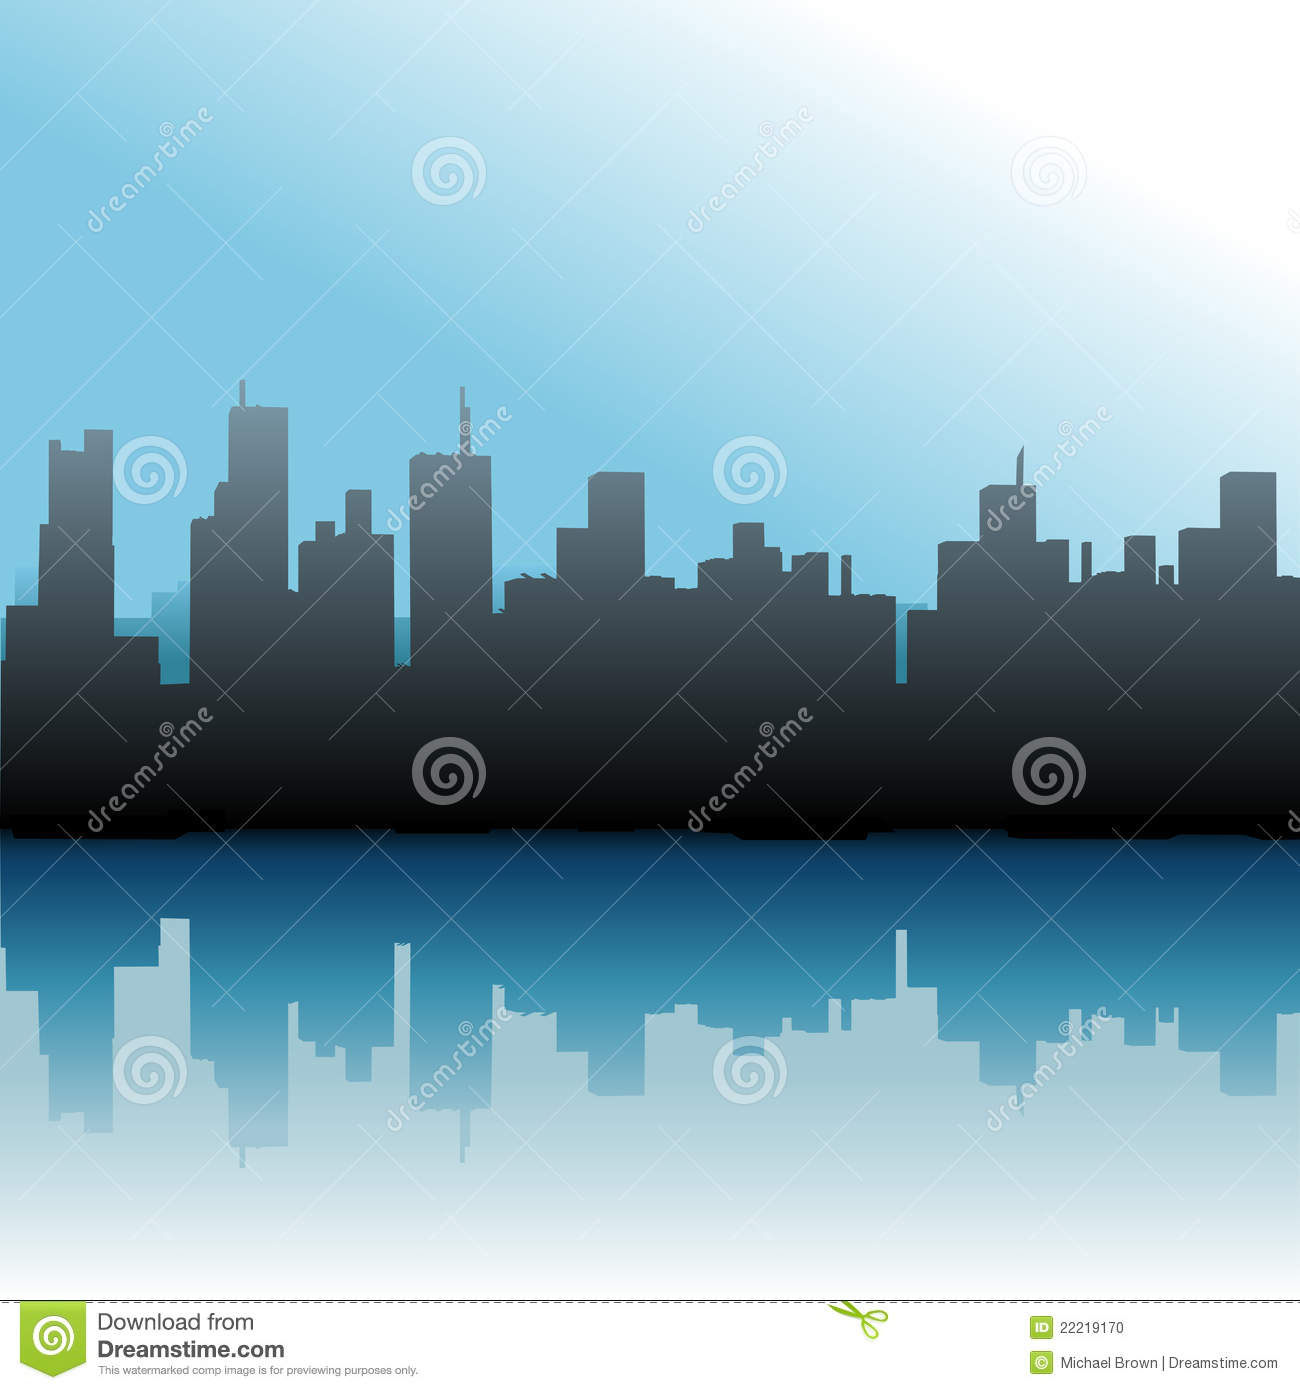 Download City Buildings Urban Skyline Sea Sky Stock Vector - Illustration of docks, buildings: 22219170